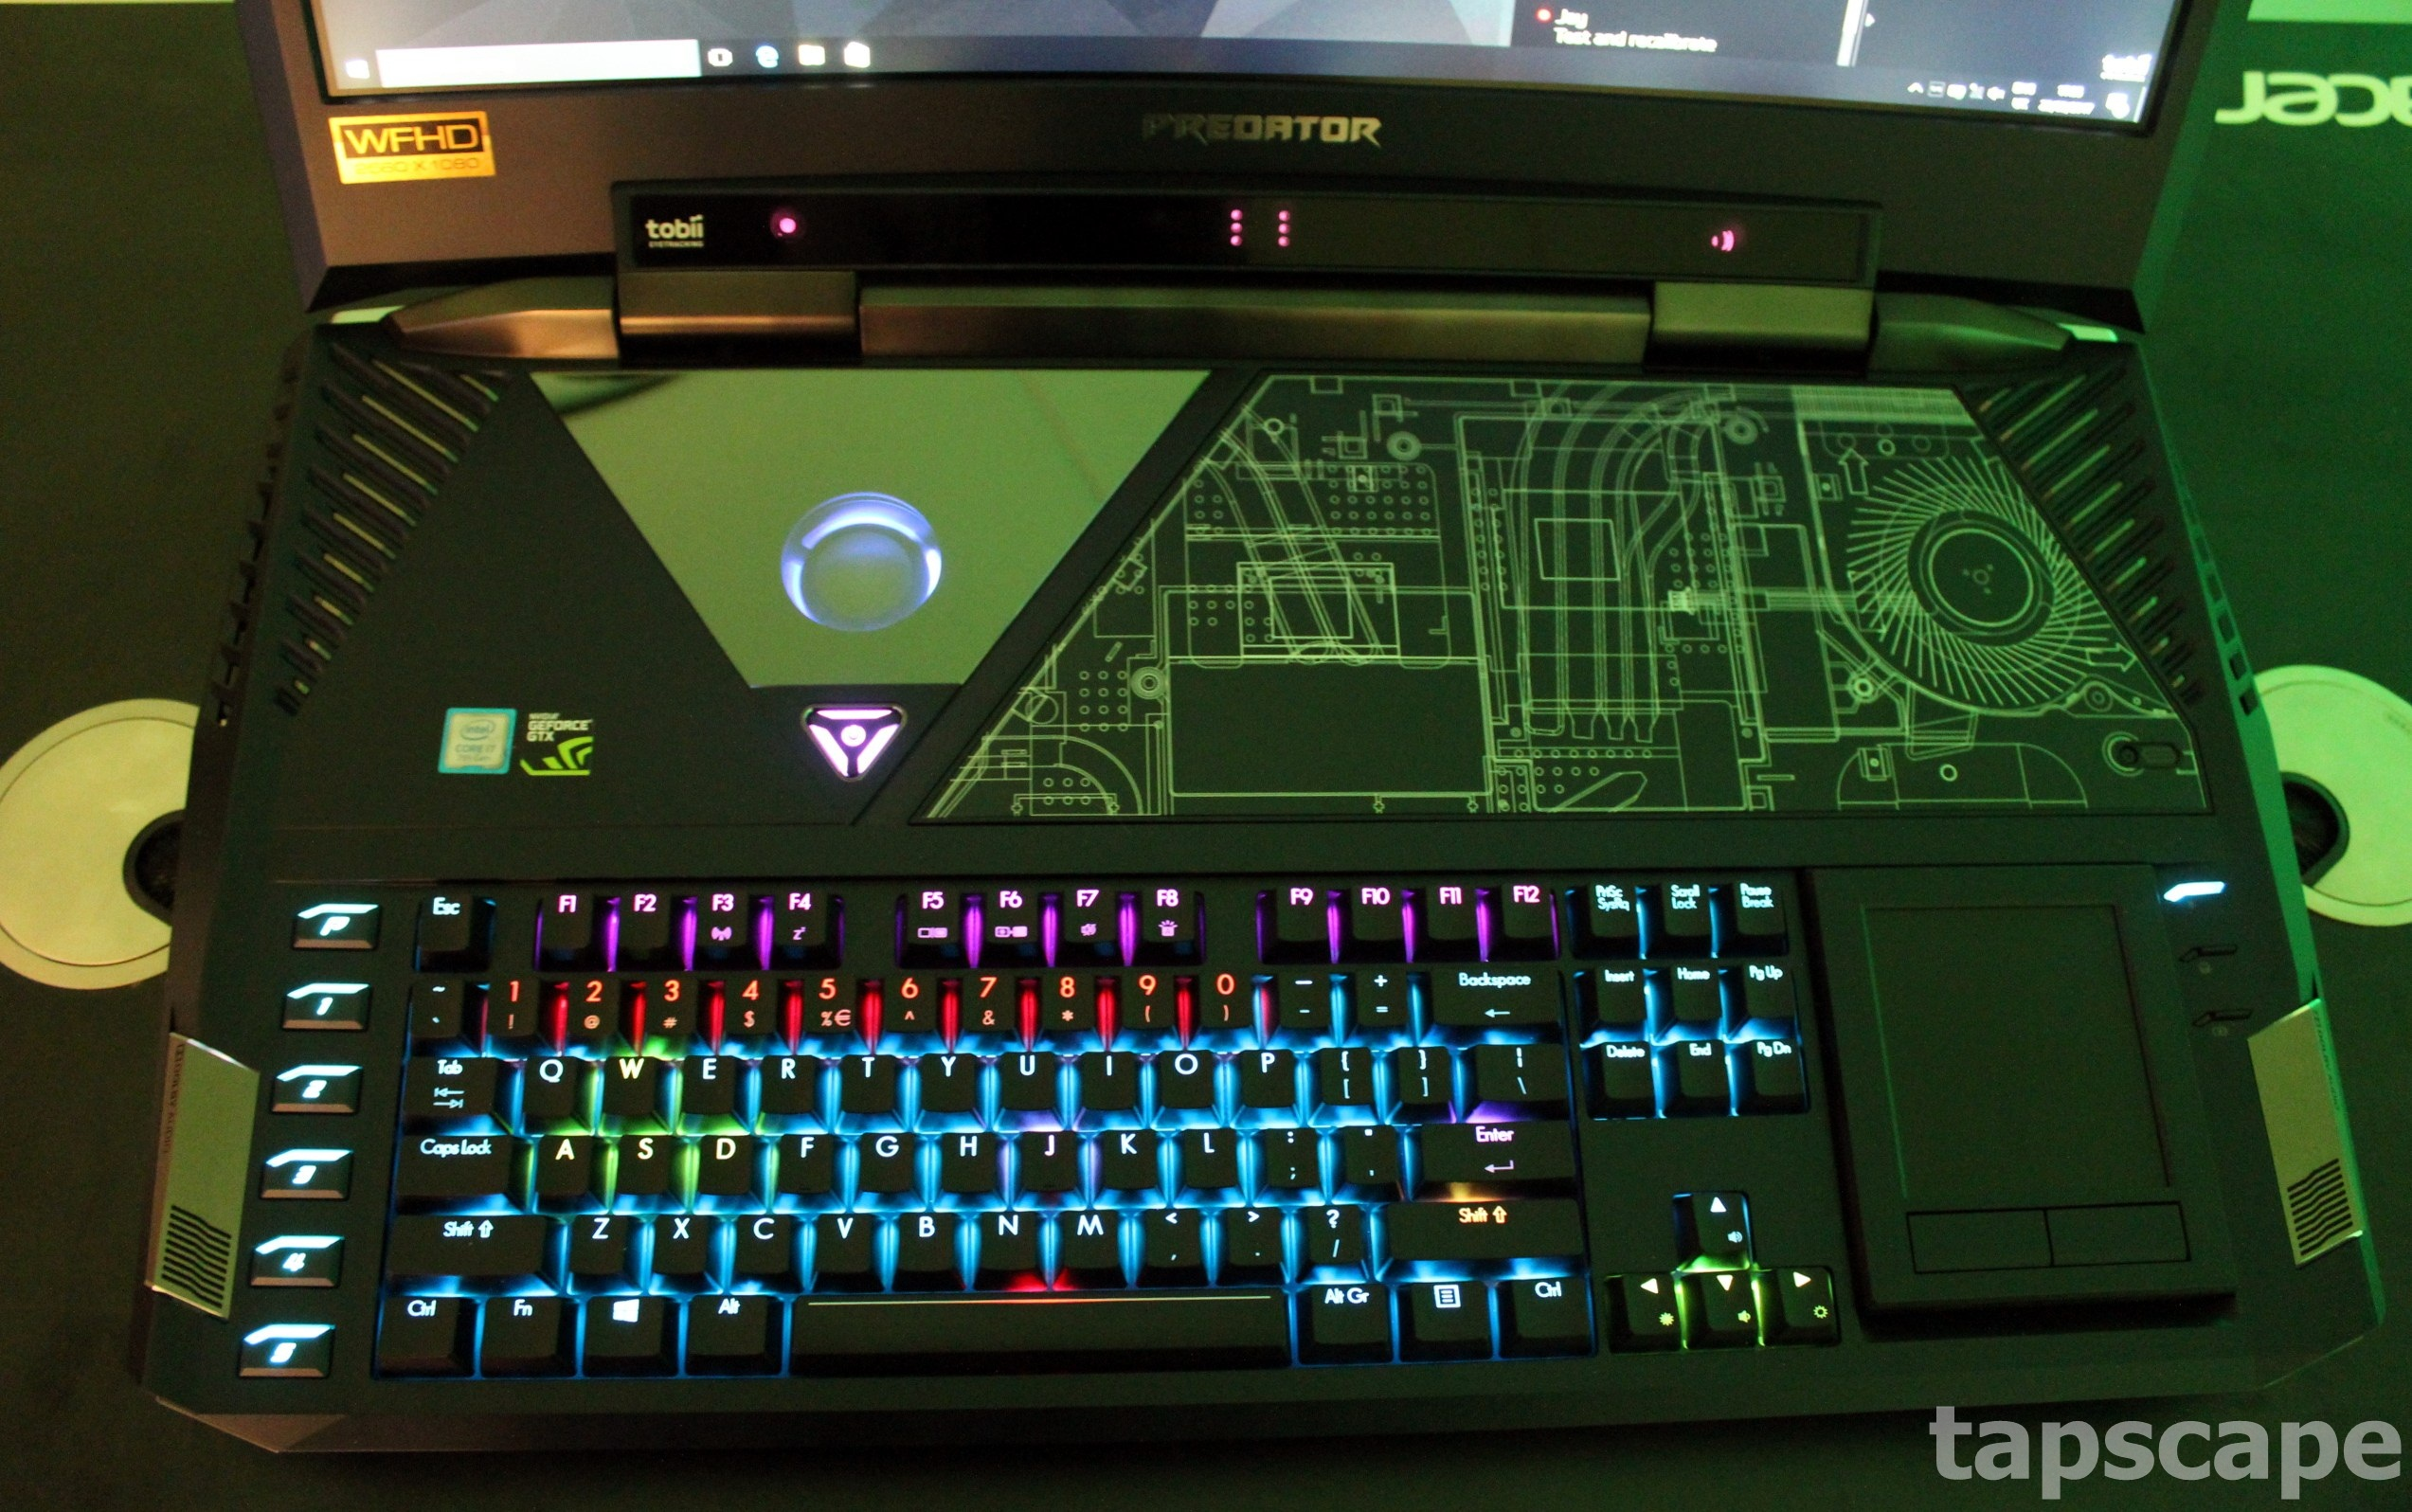 The keyboard of Acer Predator 21X gaming laptop